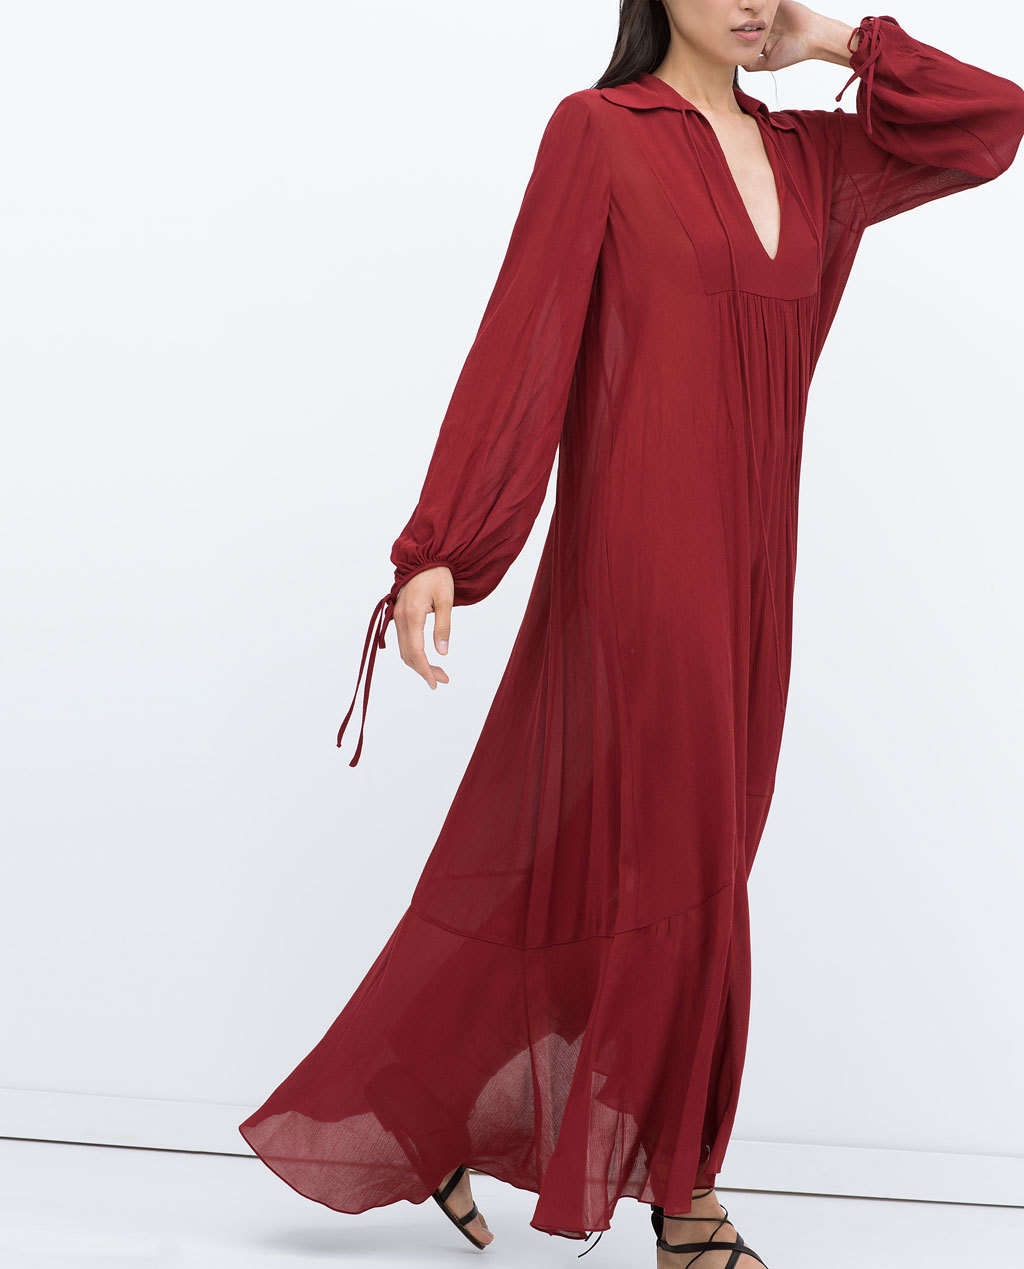 Long Studio Dress - neckline: low v-neck; fit: loose; pattern: plain; style: maxi dress; length: ankle length; sleeve style: balloon; predominant colour: burgundy; occasions: casual, holiday; fibres: polyester/polyamide - 100%; hip detail: subtle/flattering hip detail; sleeve length: long sleeve; texture group: sheer fabrics/chiffon/organza etc.; pattern type: fabric; trends: seventies retro; season: s/s 2015; wardrobe: highlight